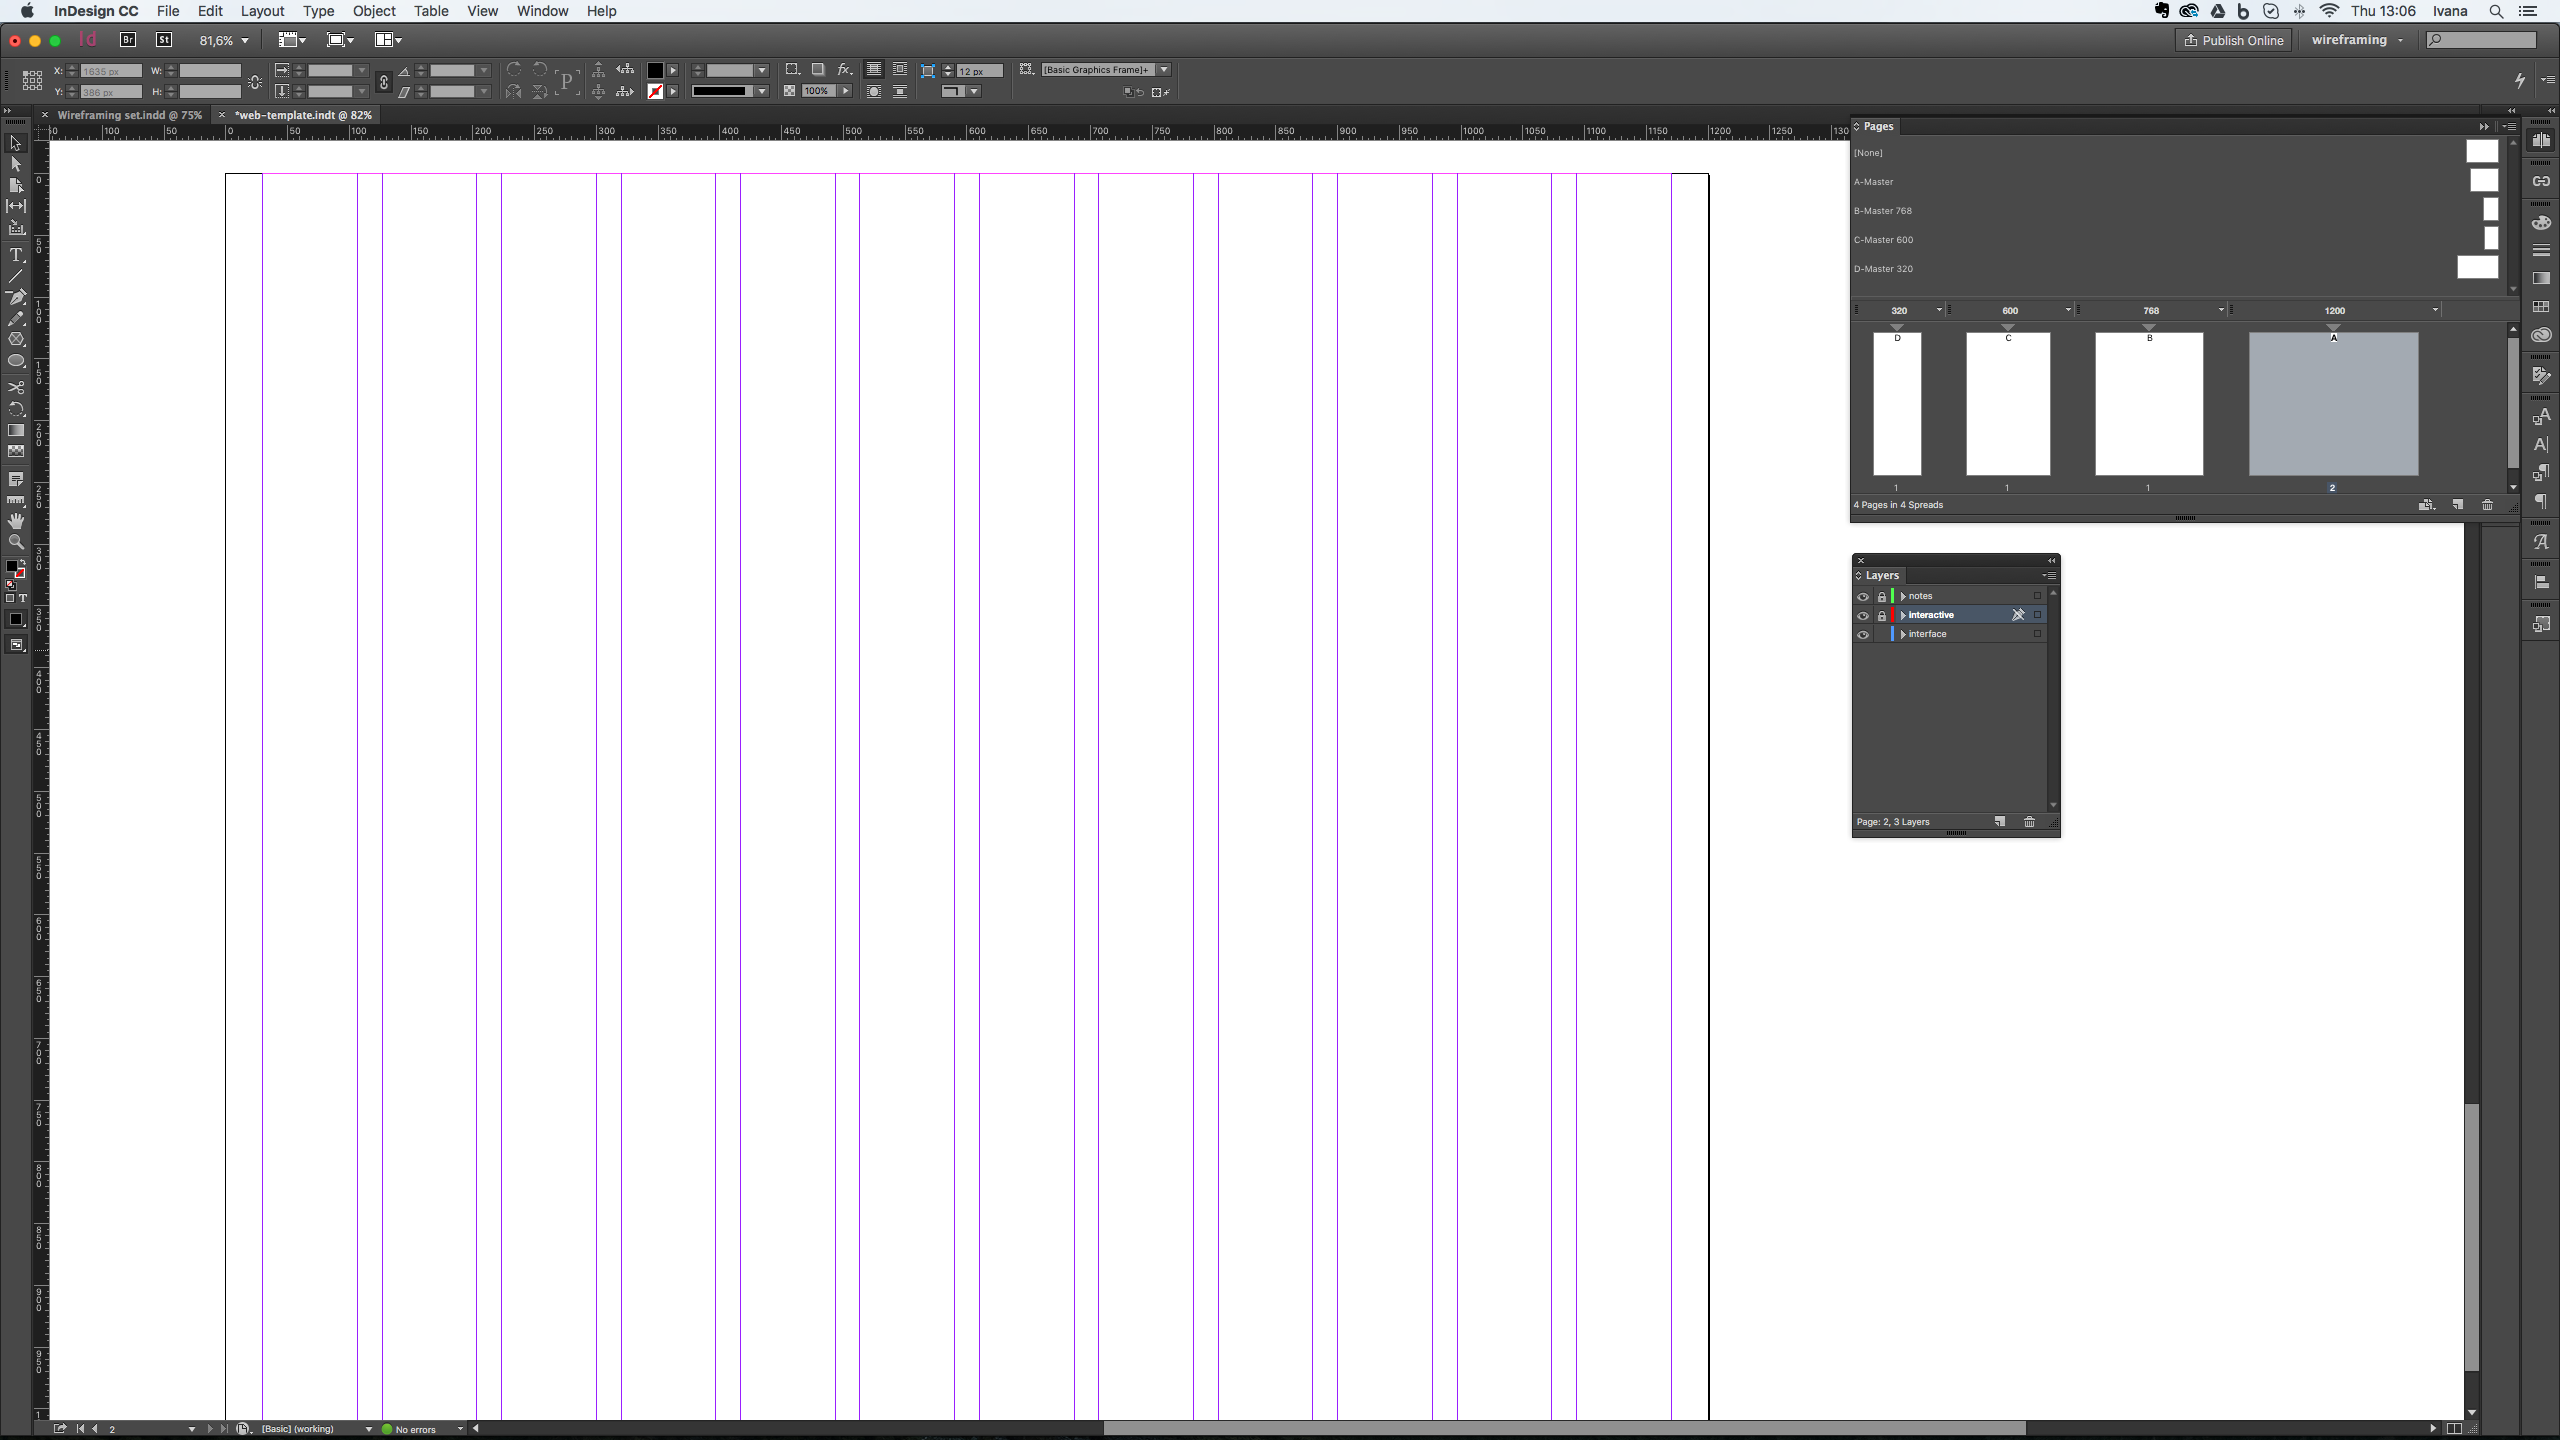 Who Knew Adobe CC Could Wireframe? - Image 8